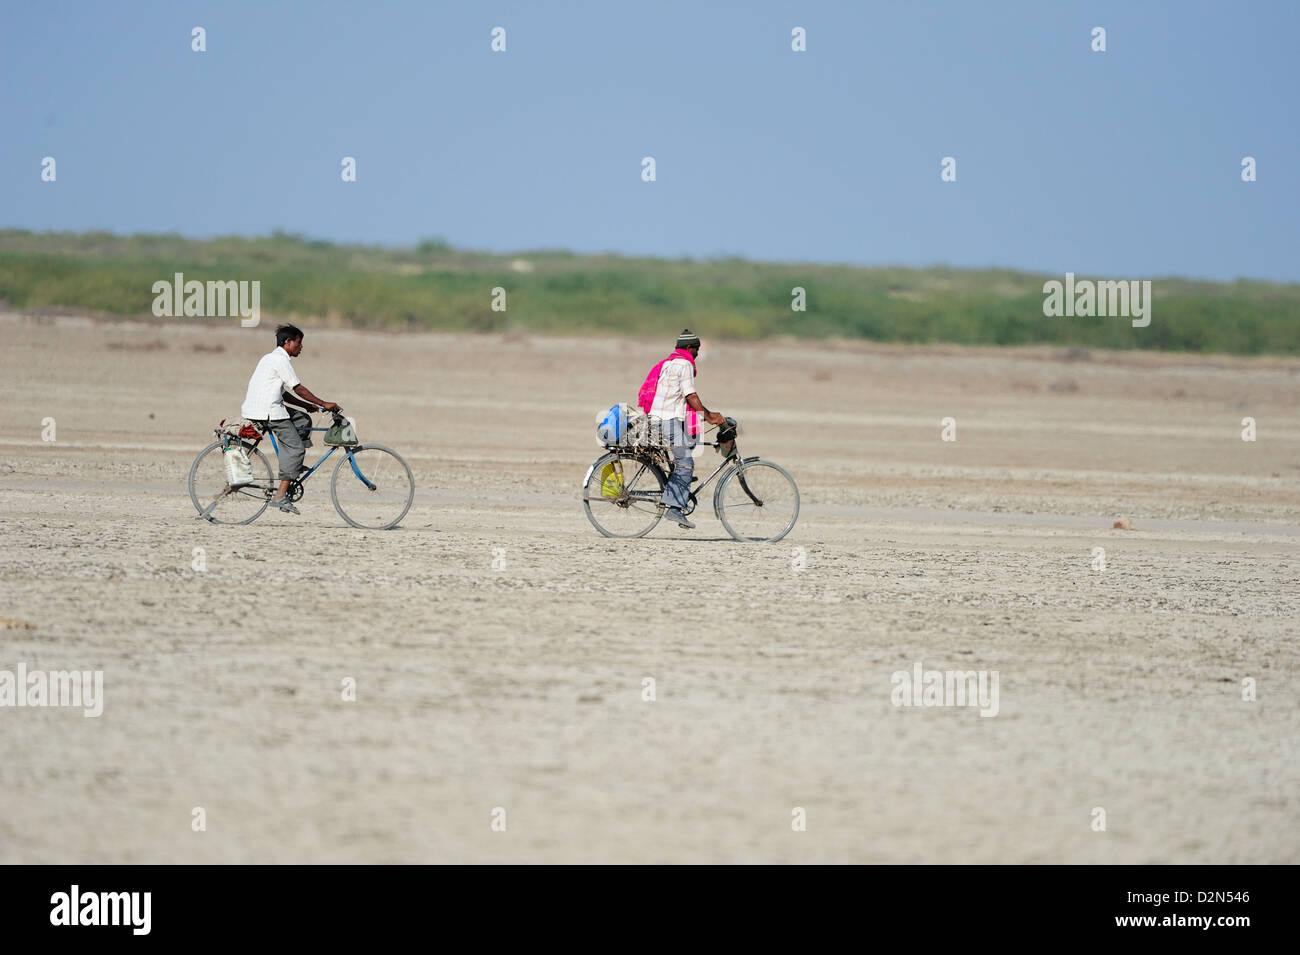 In rural India men go on bicycles to far off towns for work, Gujarat, India, Asia - Stock Image